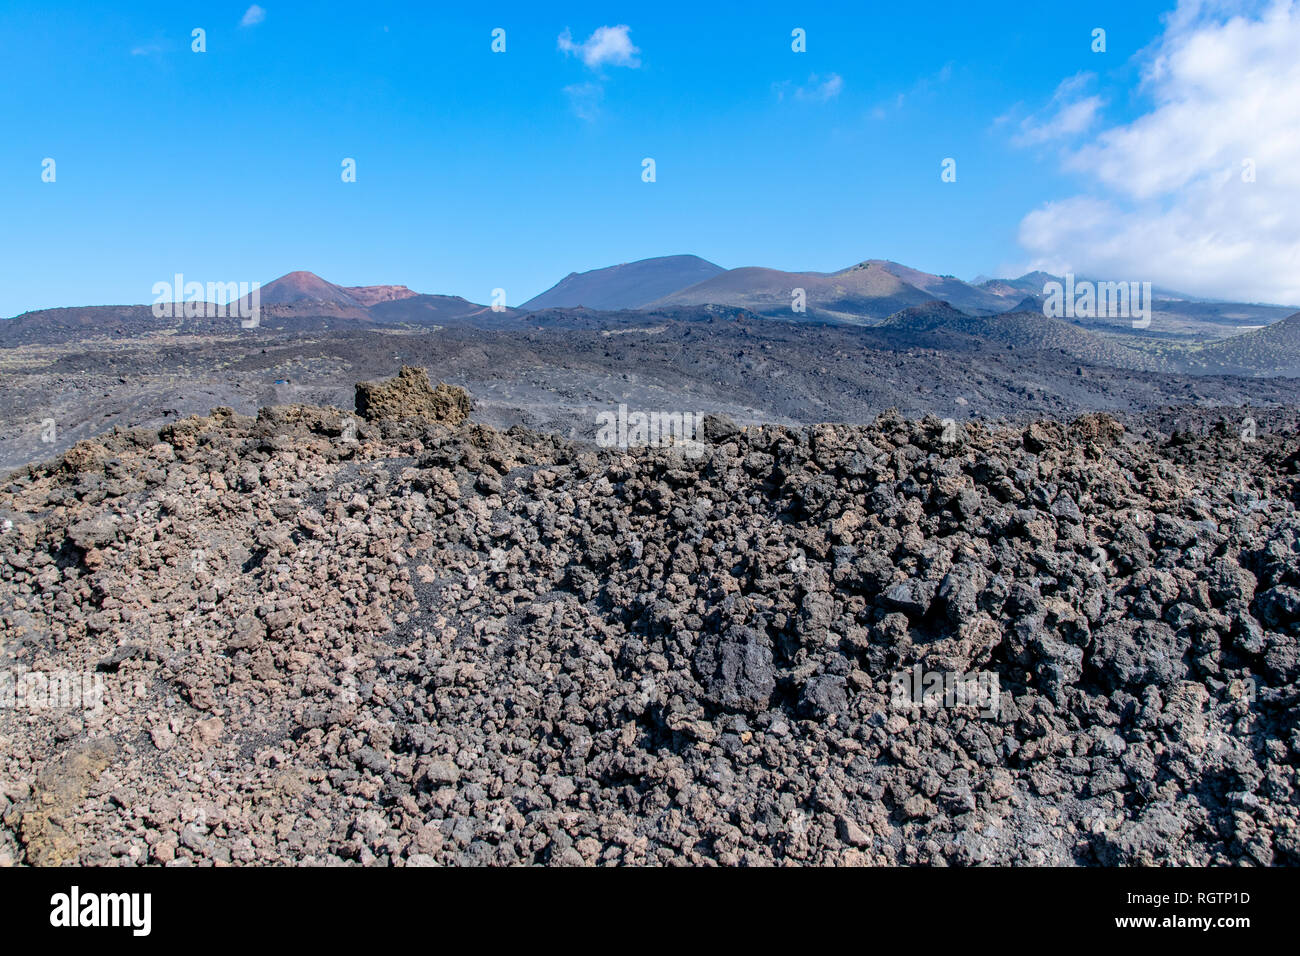 Edge of the volcanic lava field with Teneguia volcano in the background La Palma Island, Canaries, Spain - Stock Image